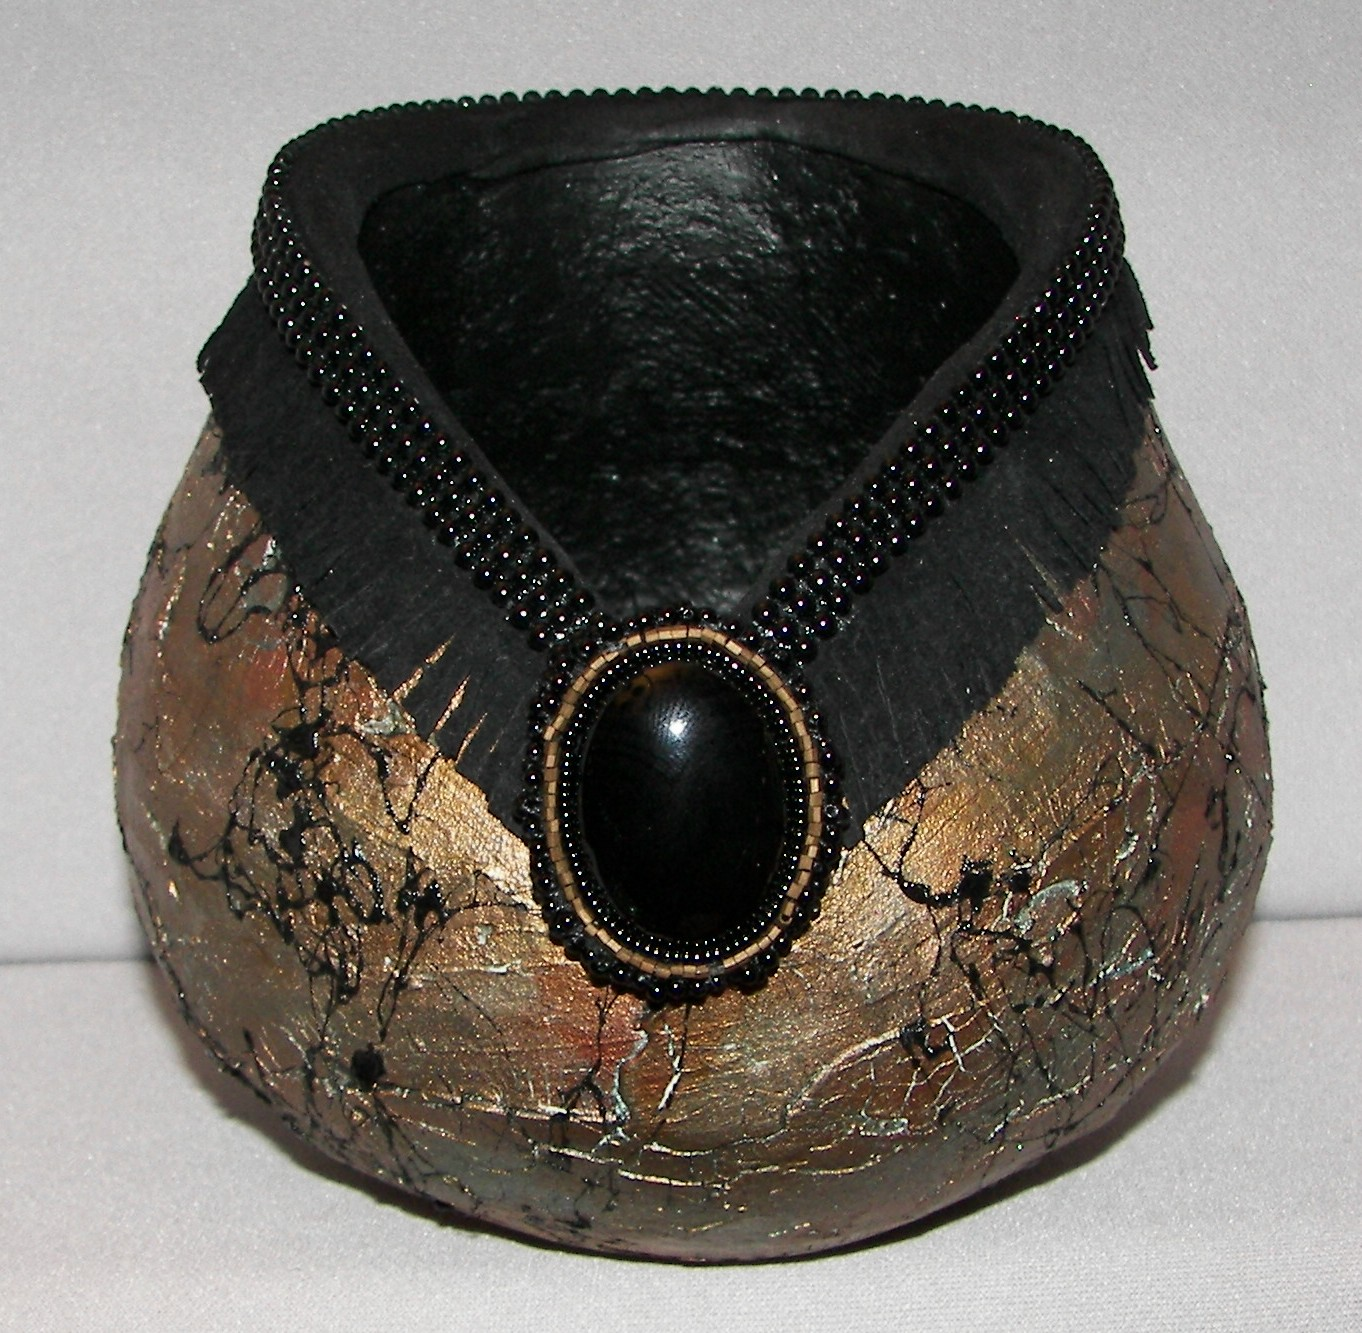 gourd-crackle-webbing-spray-black-onyx